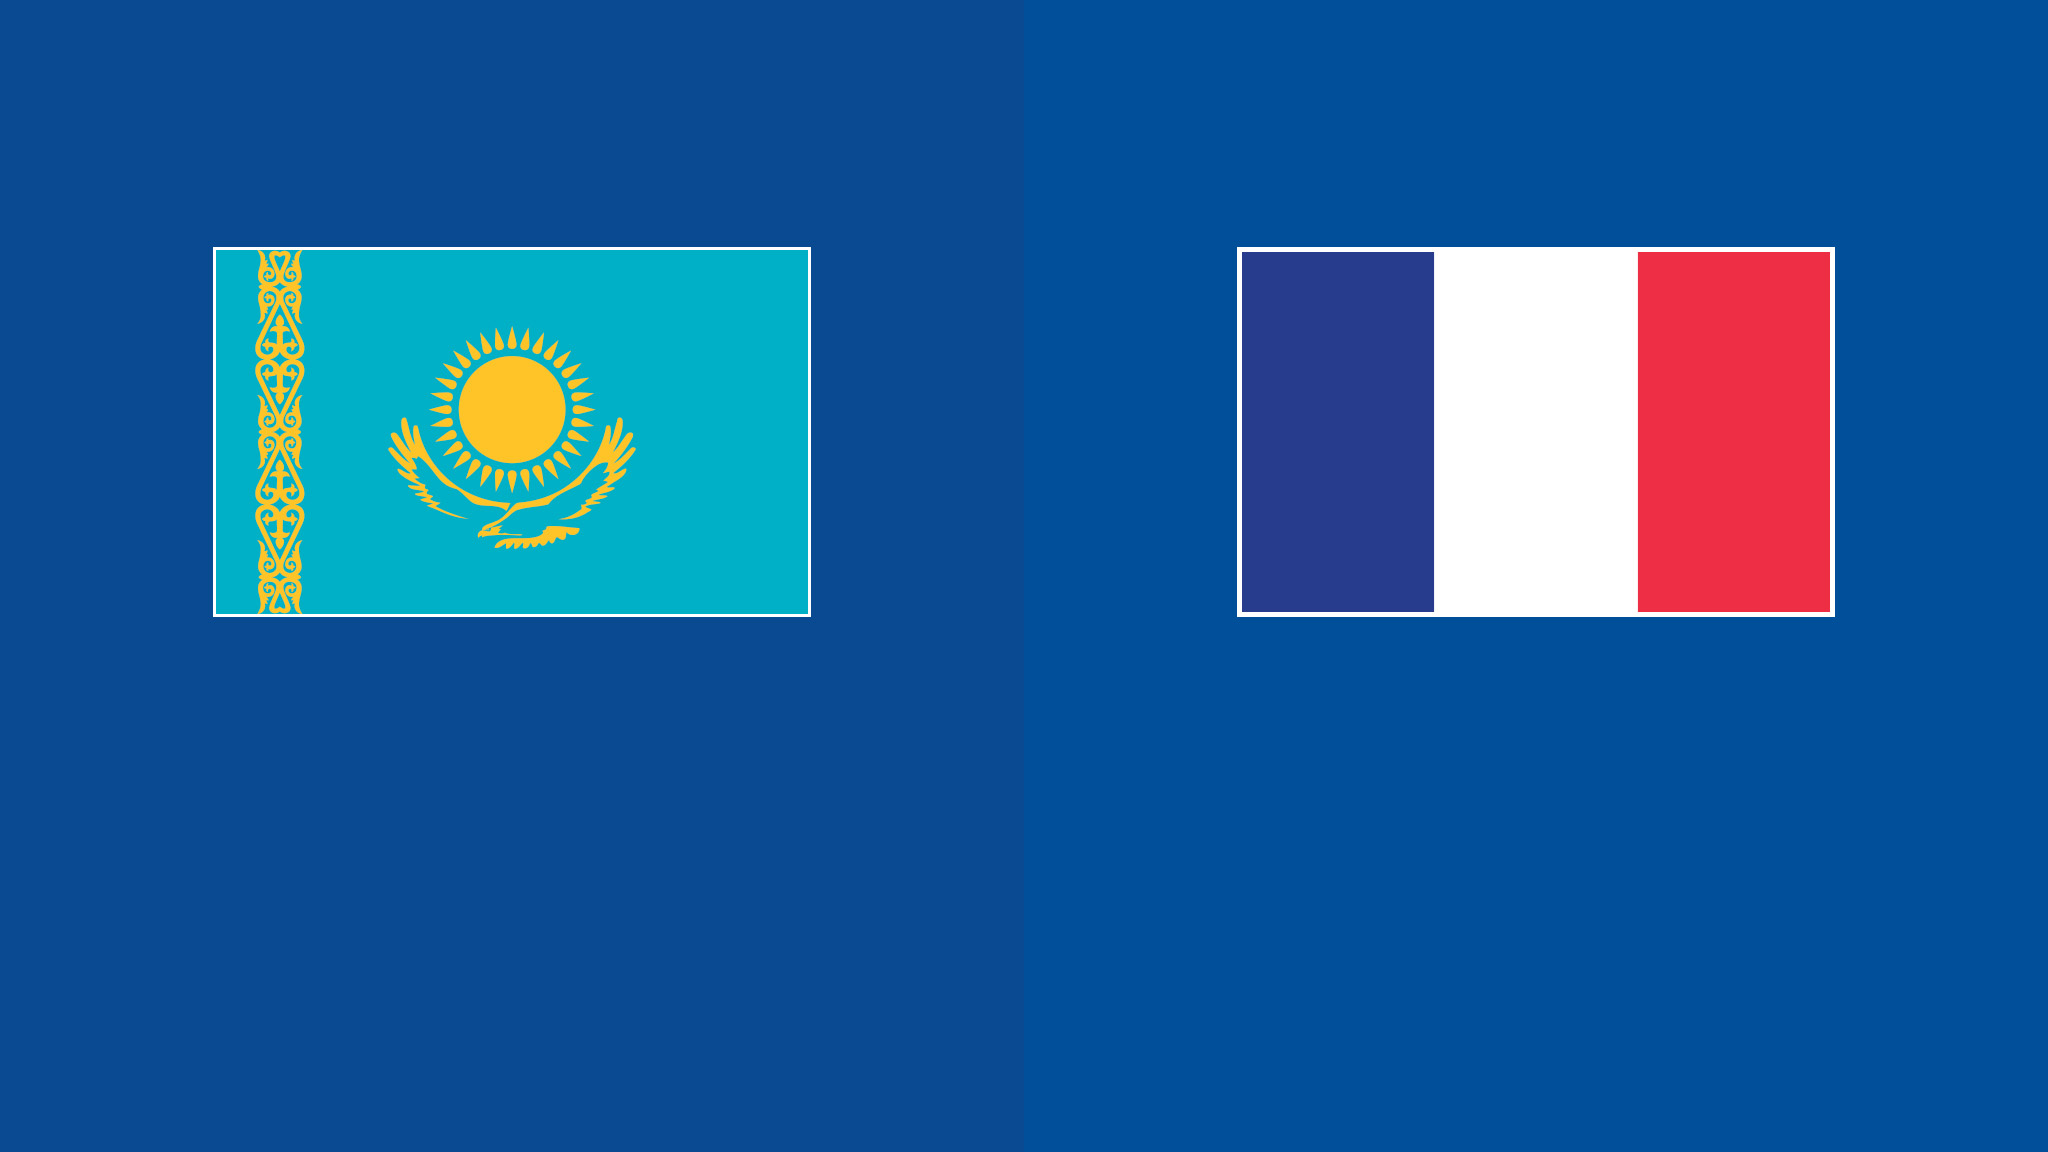 France vs kazaksthan